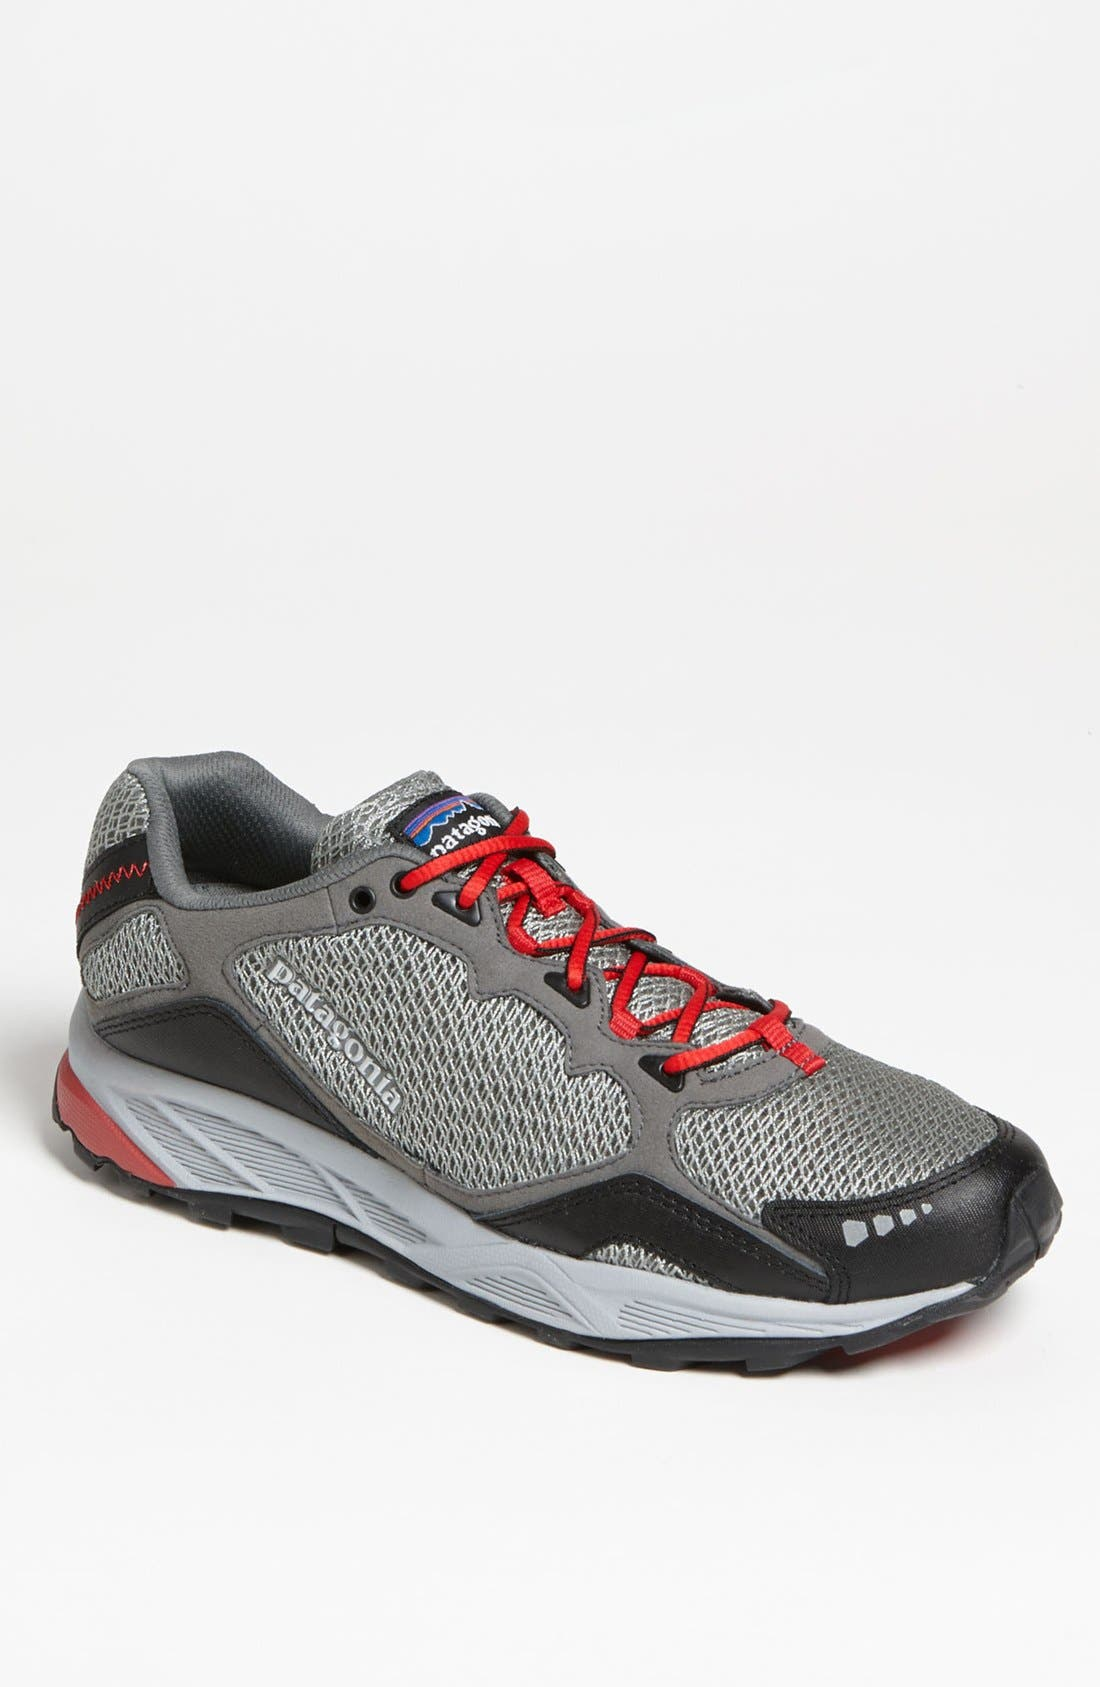 Alternate Image 1 Selected - Patagonia 'Gamut' Trail Running Shoe (Men)